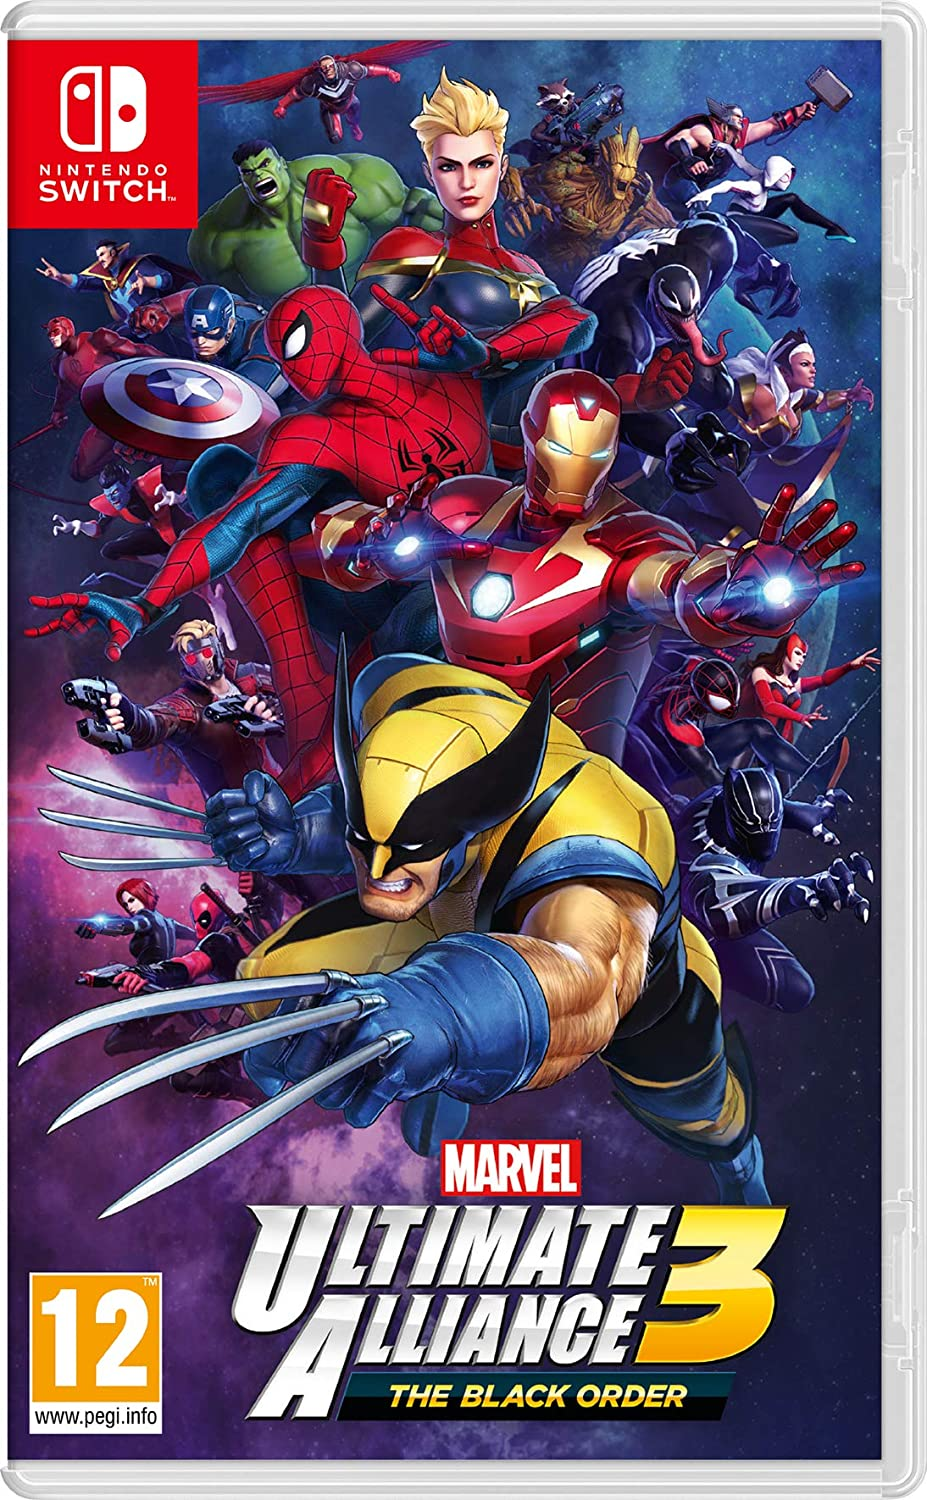 Marvel Ultimate Alliance 3: the Black Order - Nintendo Switch [Importación inglesa]: Amazon.es: Videojuegos